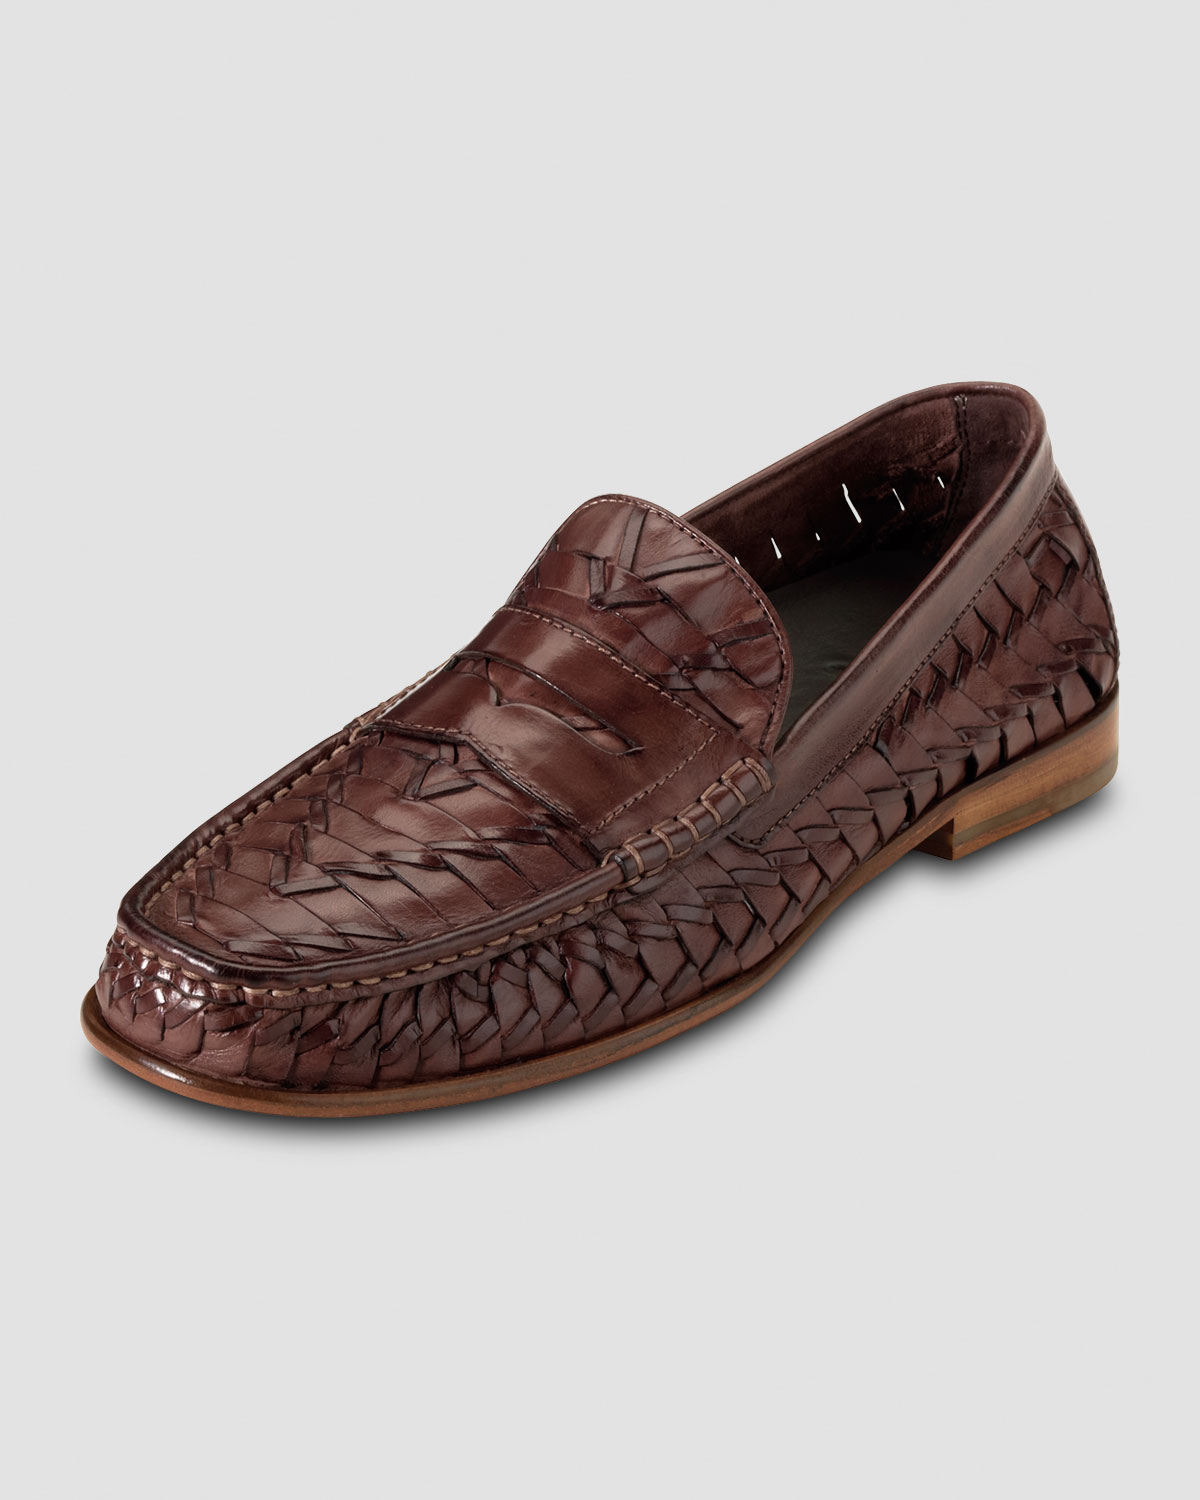 476e2d02385 Lyst - Cole Haan Air Tremont Woven Penny Loafer in Brown for Men